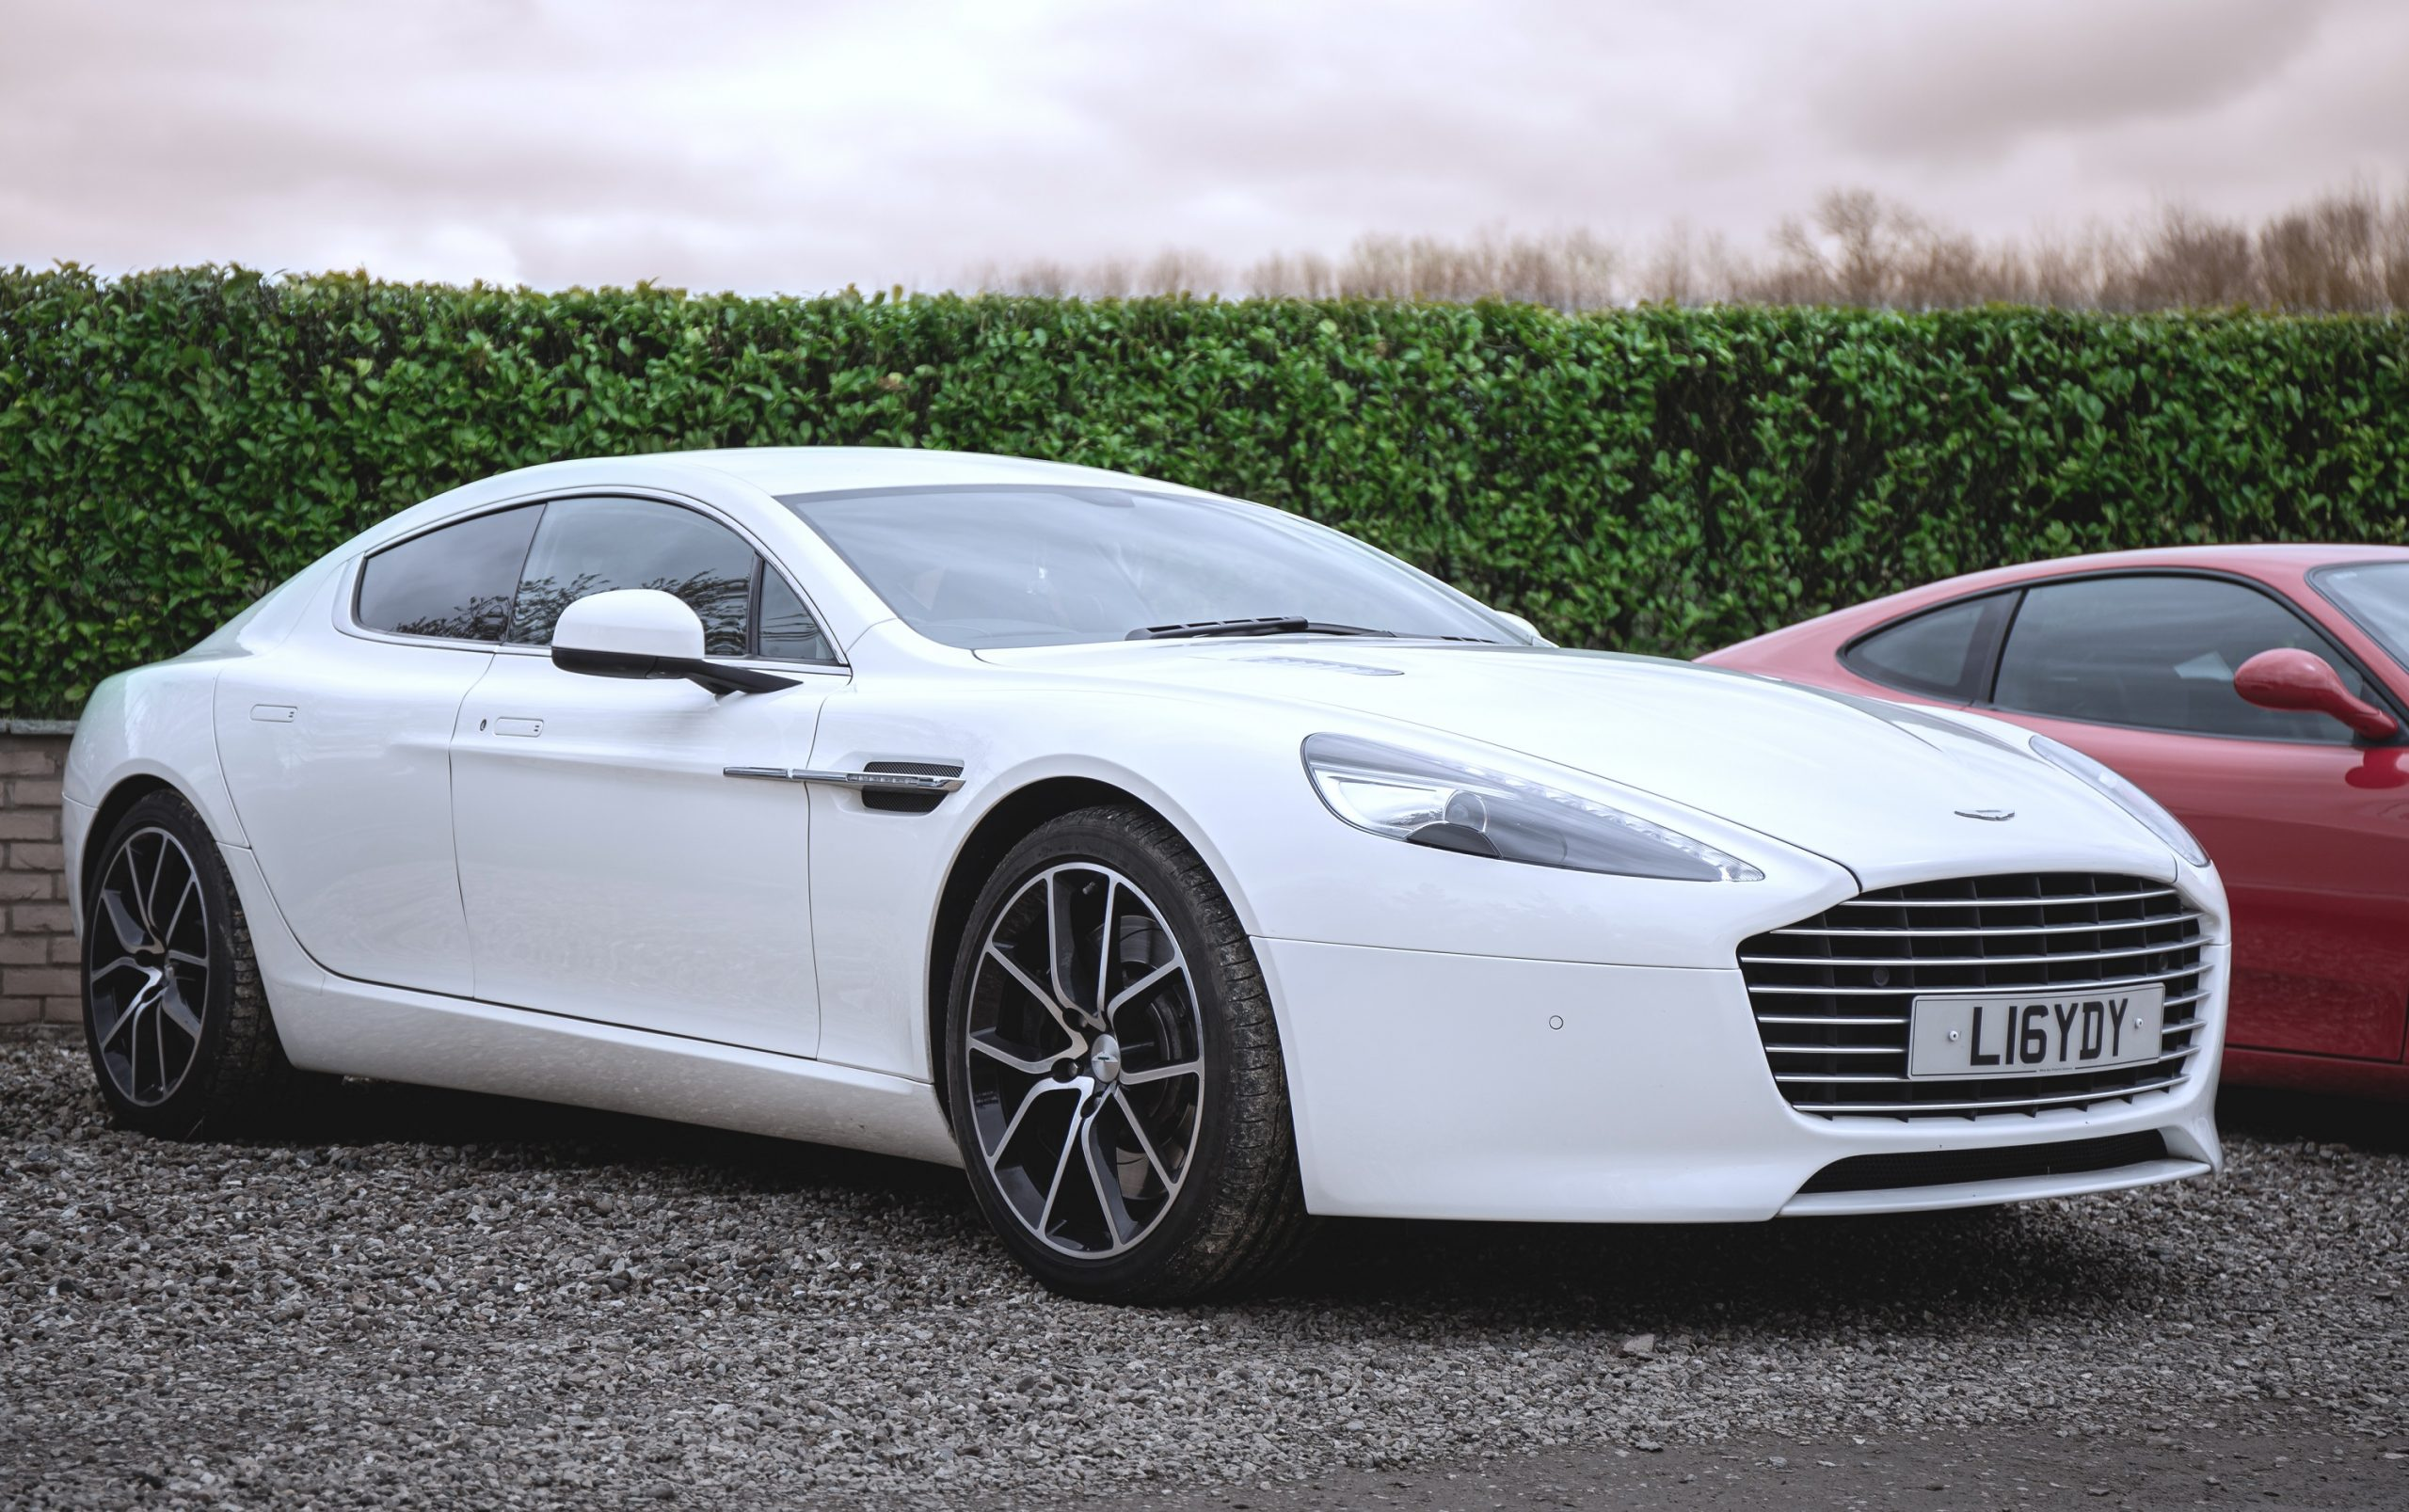 A white Aston Martin Rapide at an auto show in the UK, seen from the front 3/4 angle